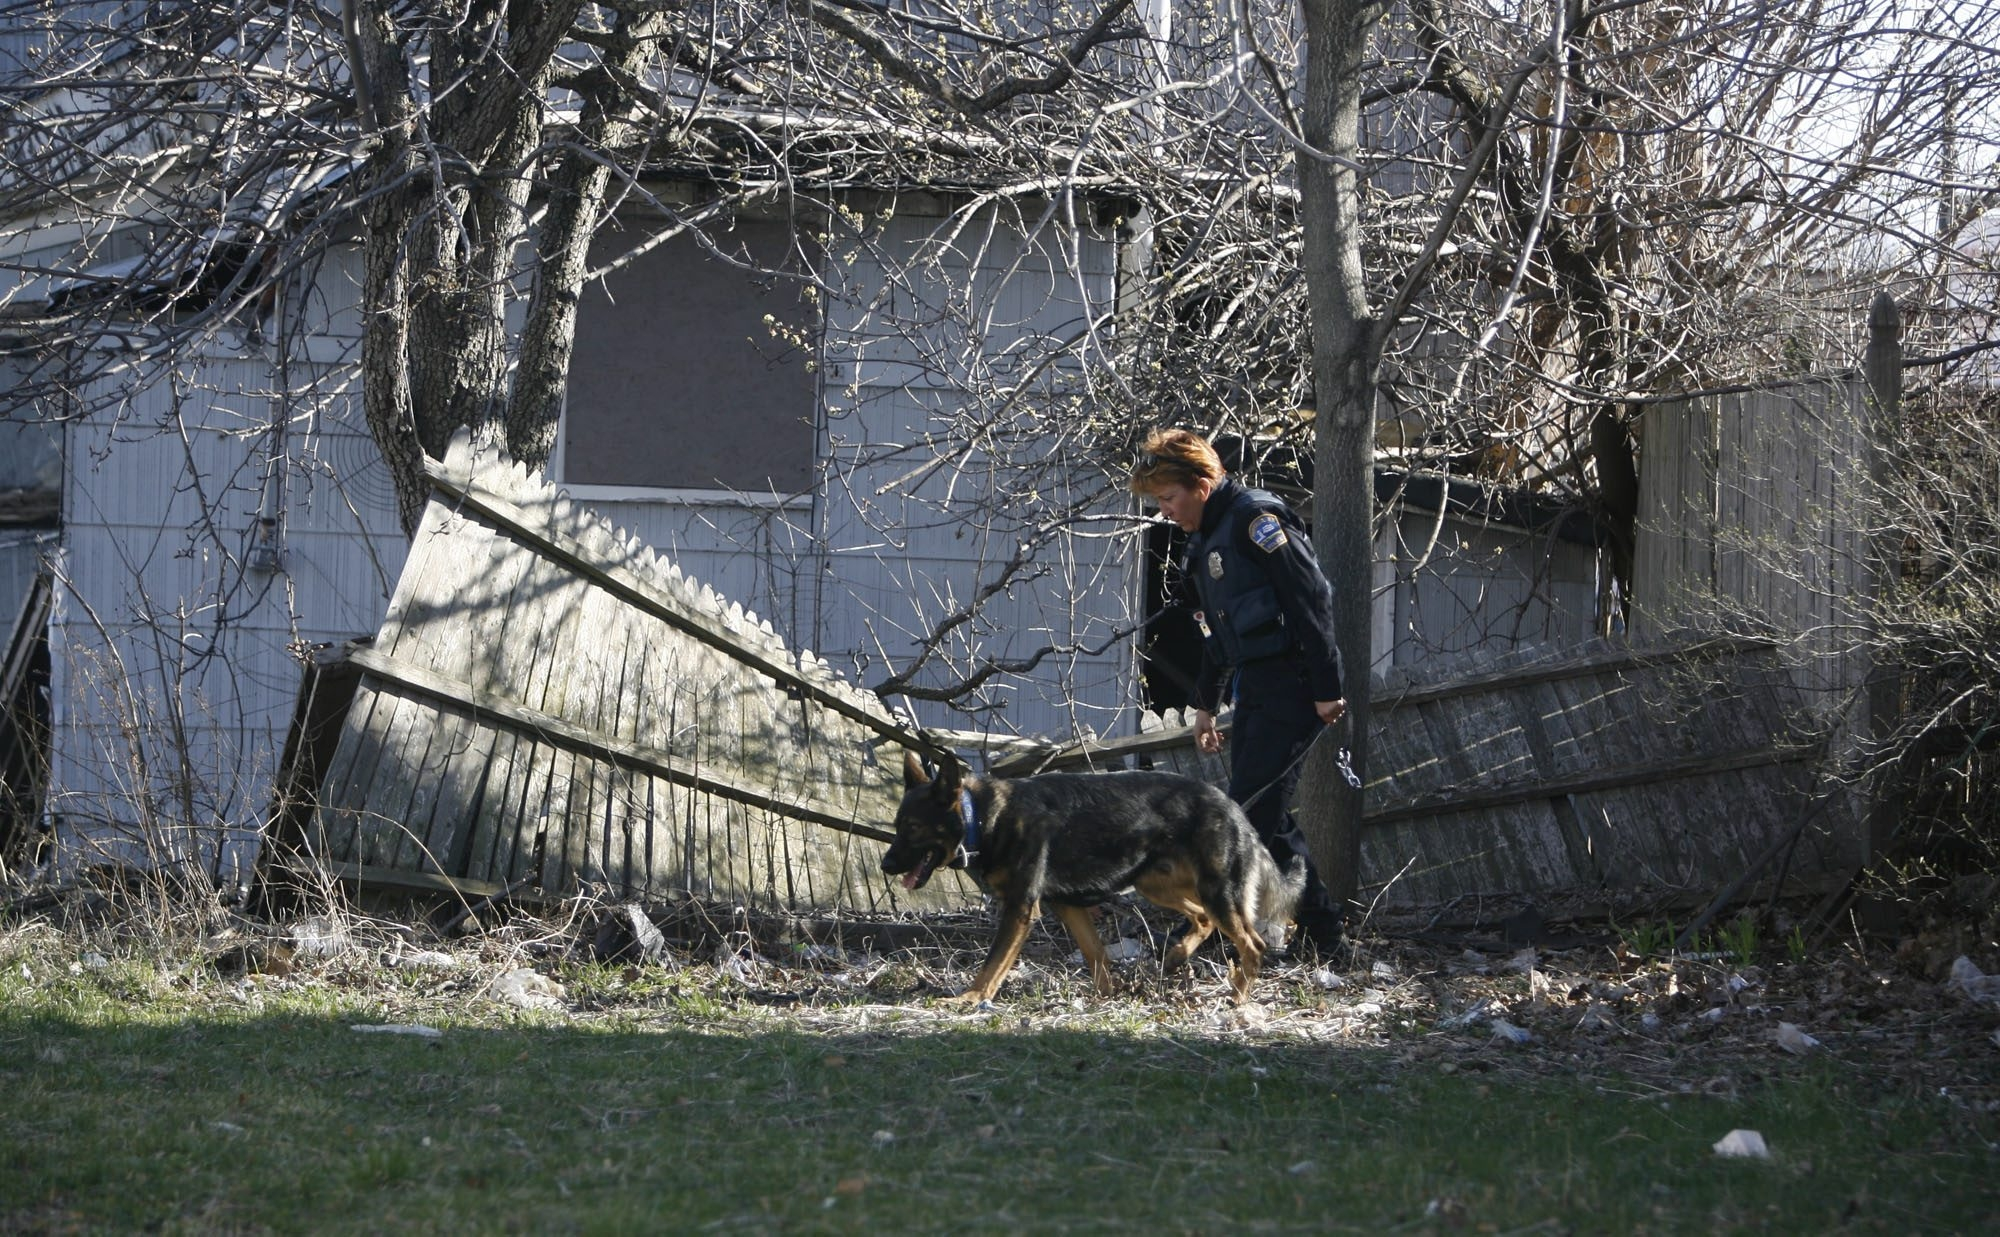 Buffalo Police K-9 Officer Mary Ellen Sawicki and her dog Herc, shown here on the job in 2009, carried out 4,365 searches for police.